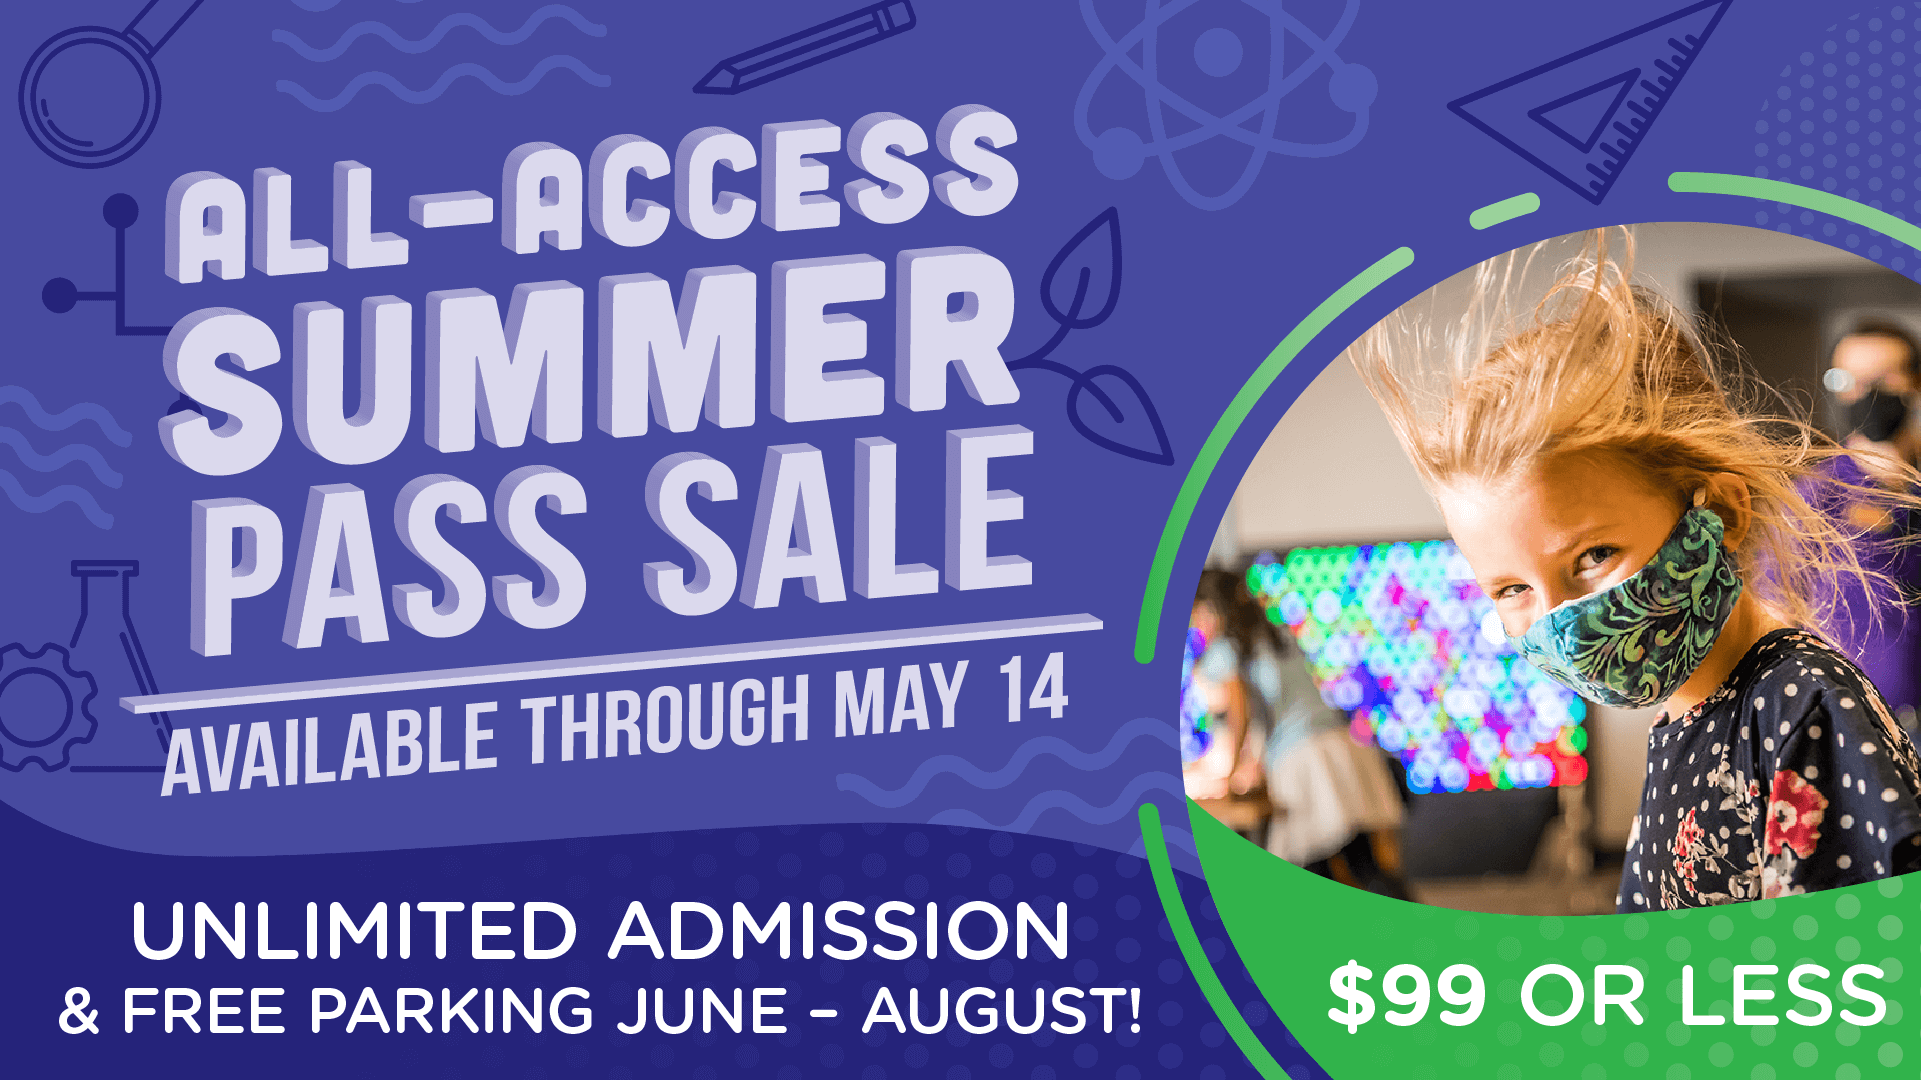 All-Access Summer Pass Sale unlimited general admission and free parking promotion